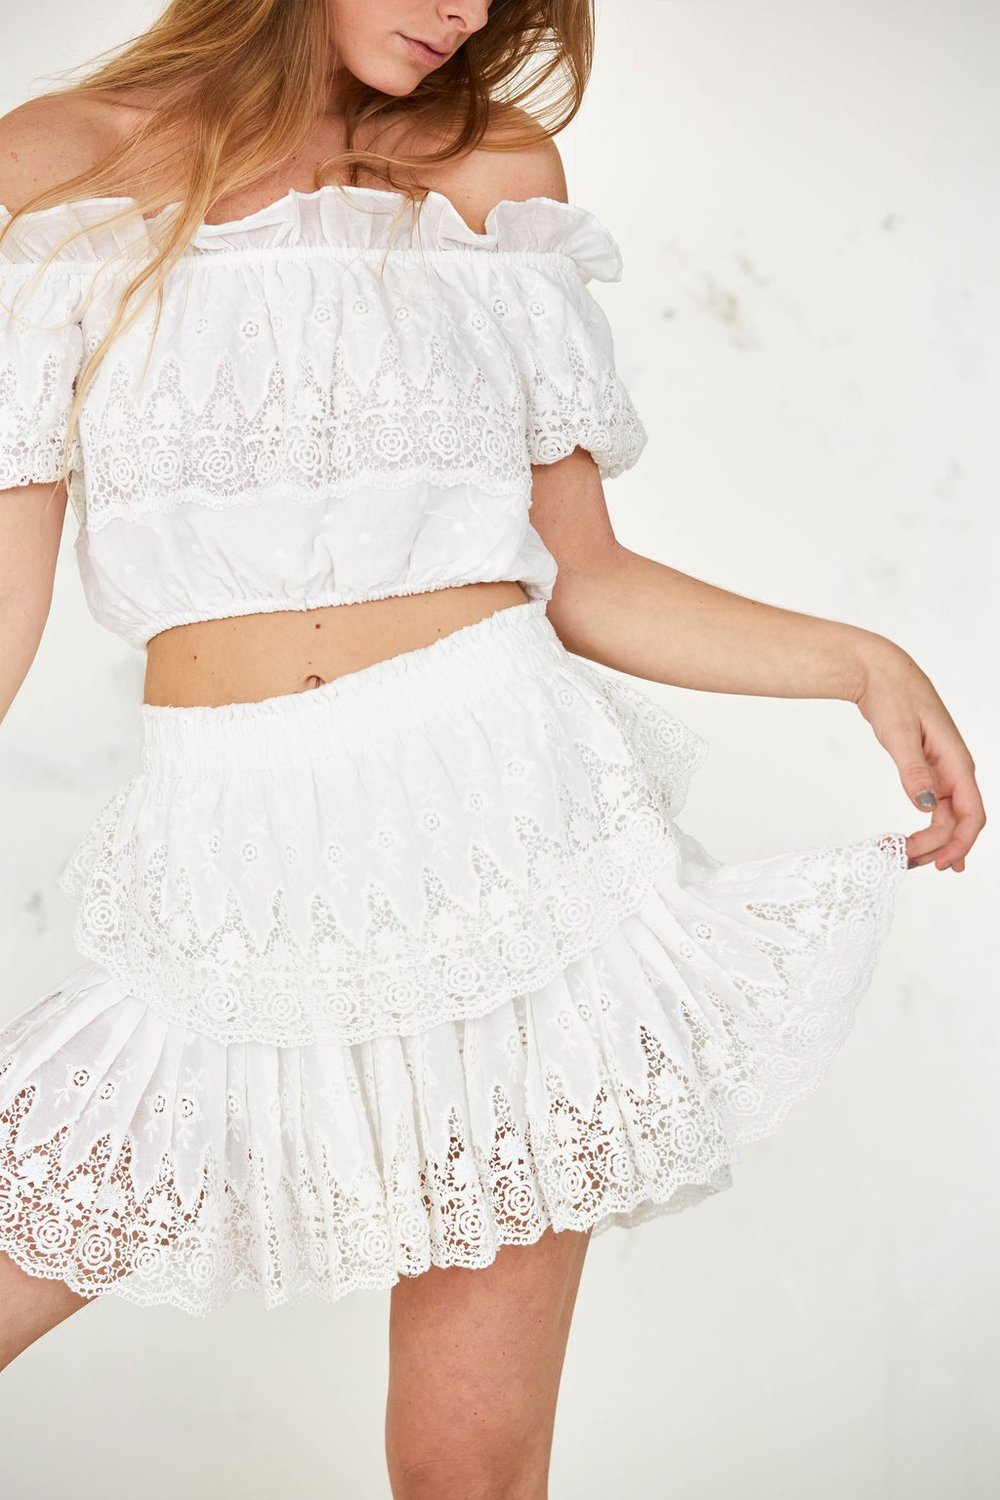 Loveshackfancy_Ruffle_Mini_Skirt_White_Prairie_Lace_Full_1024x.jpg